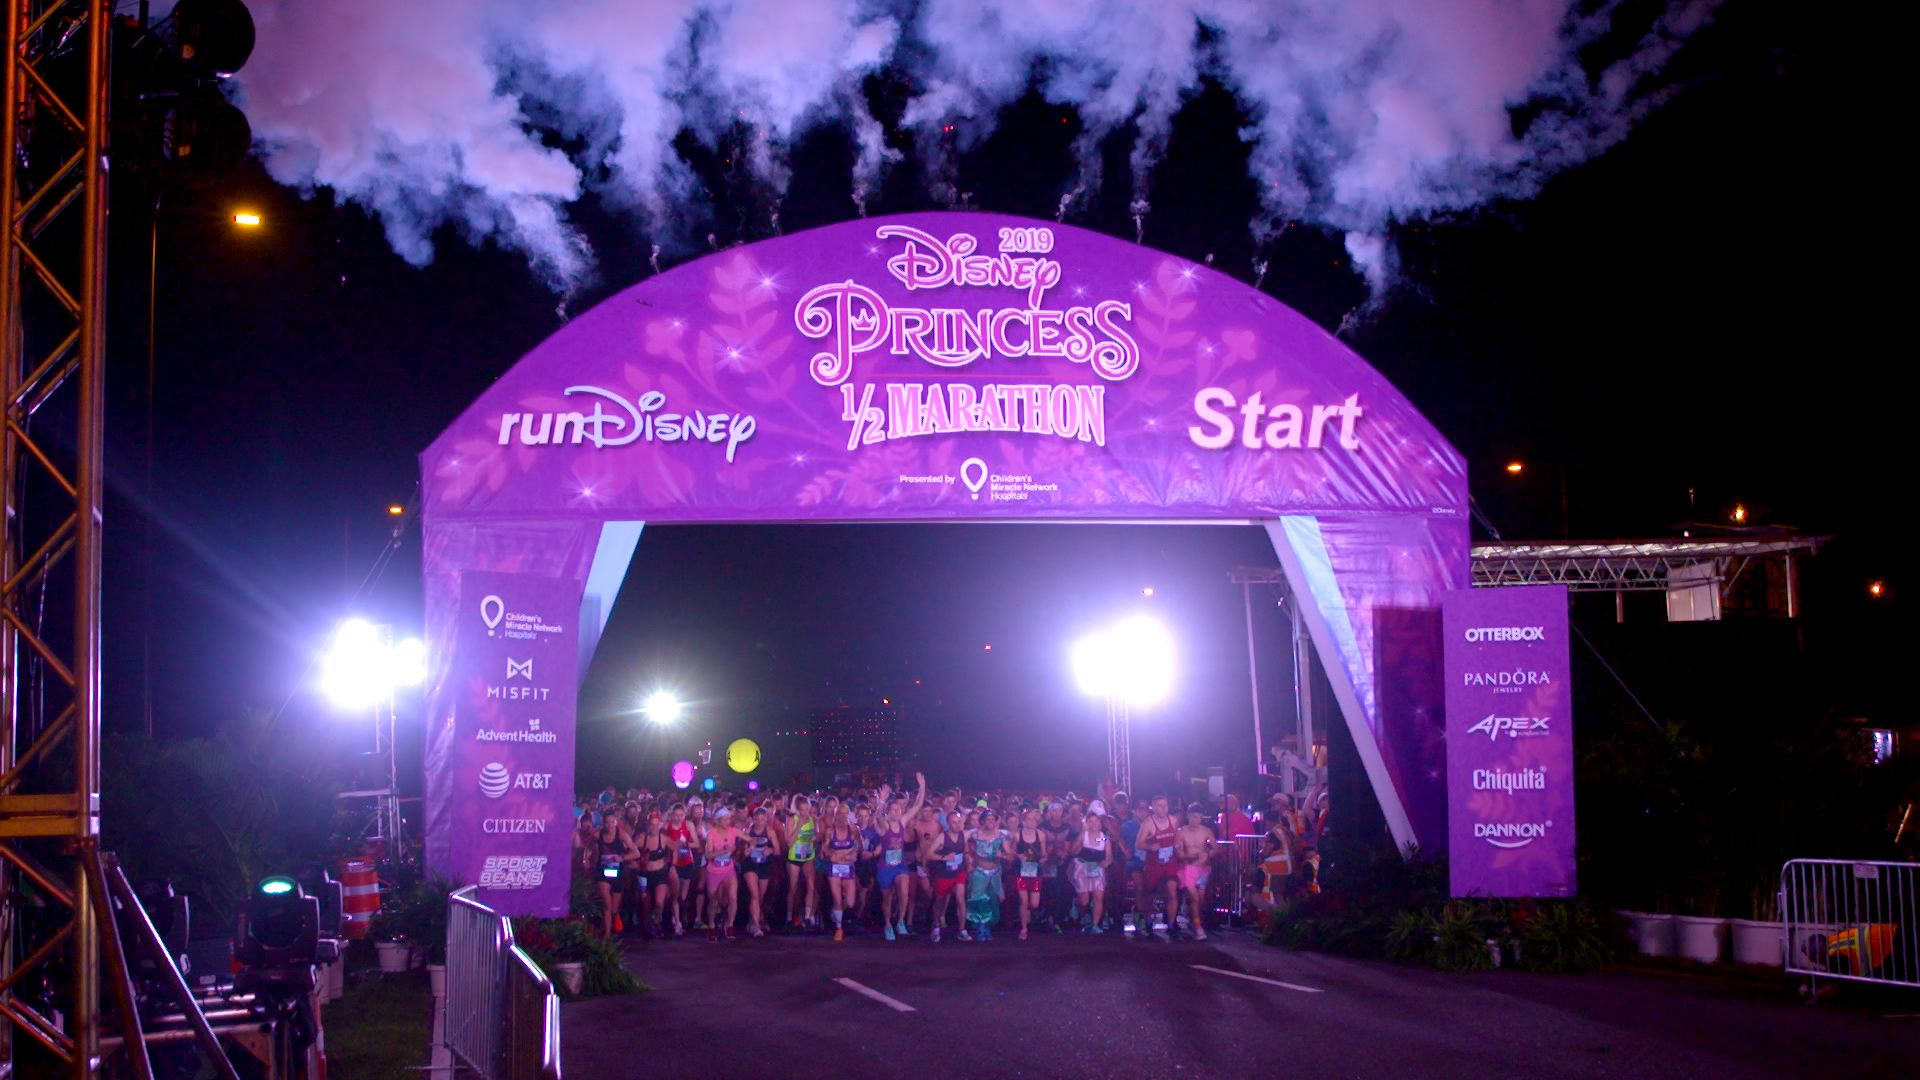 What It's Like Running The Disney Princess Half Marathon In Disney Disney Princess Half Marathon Map on